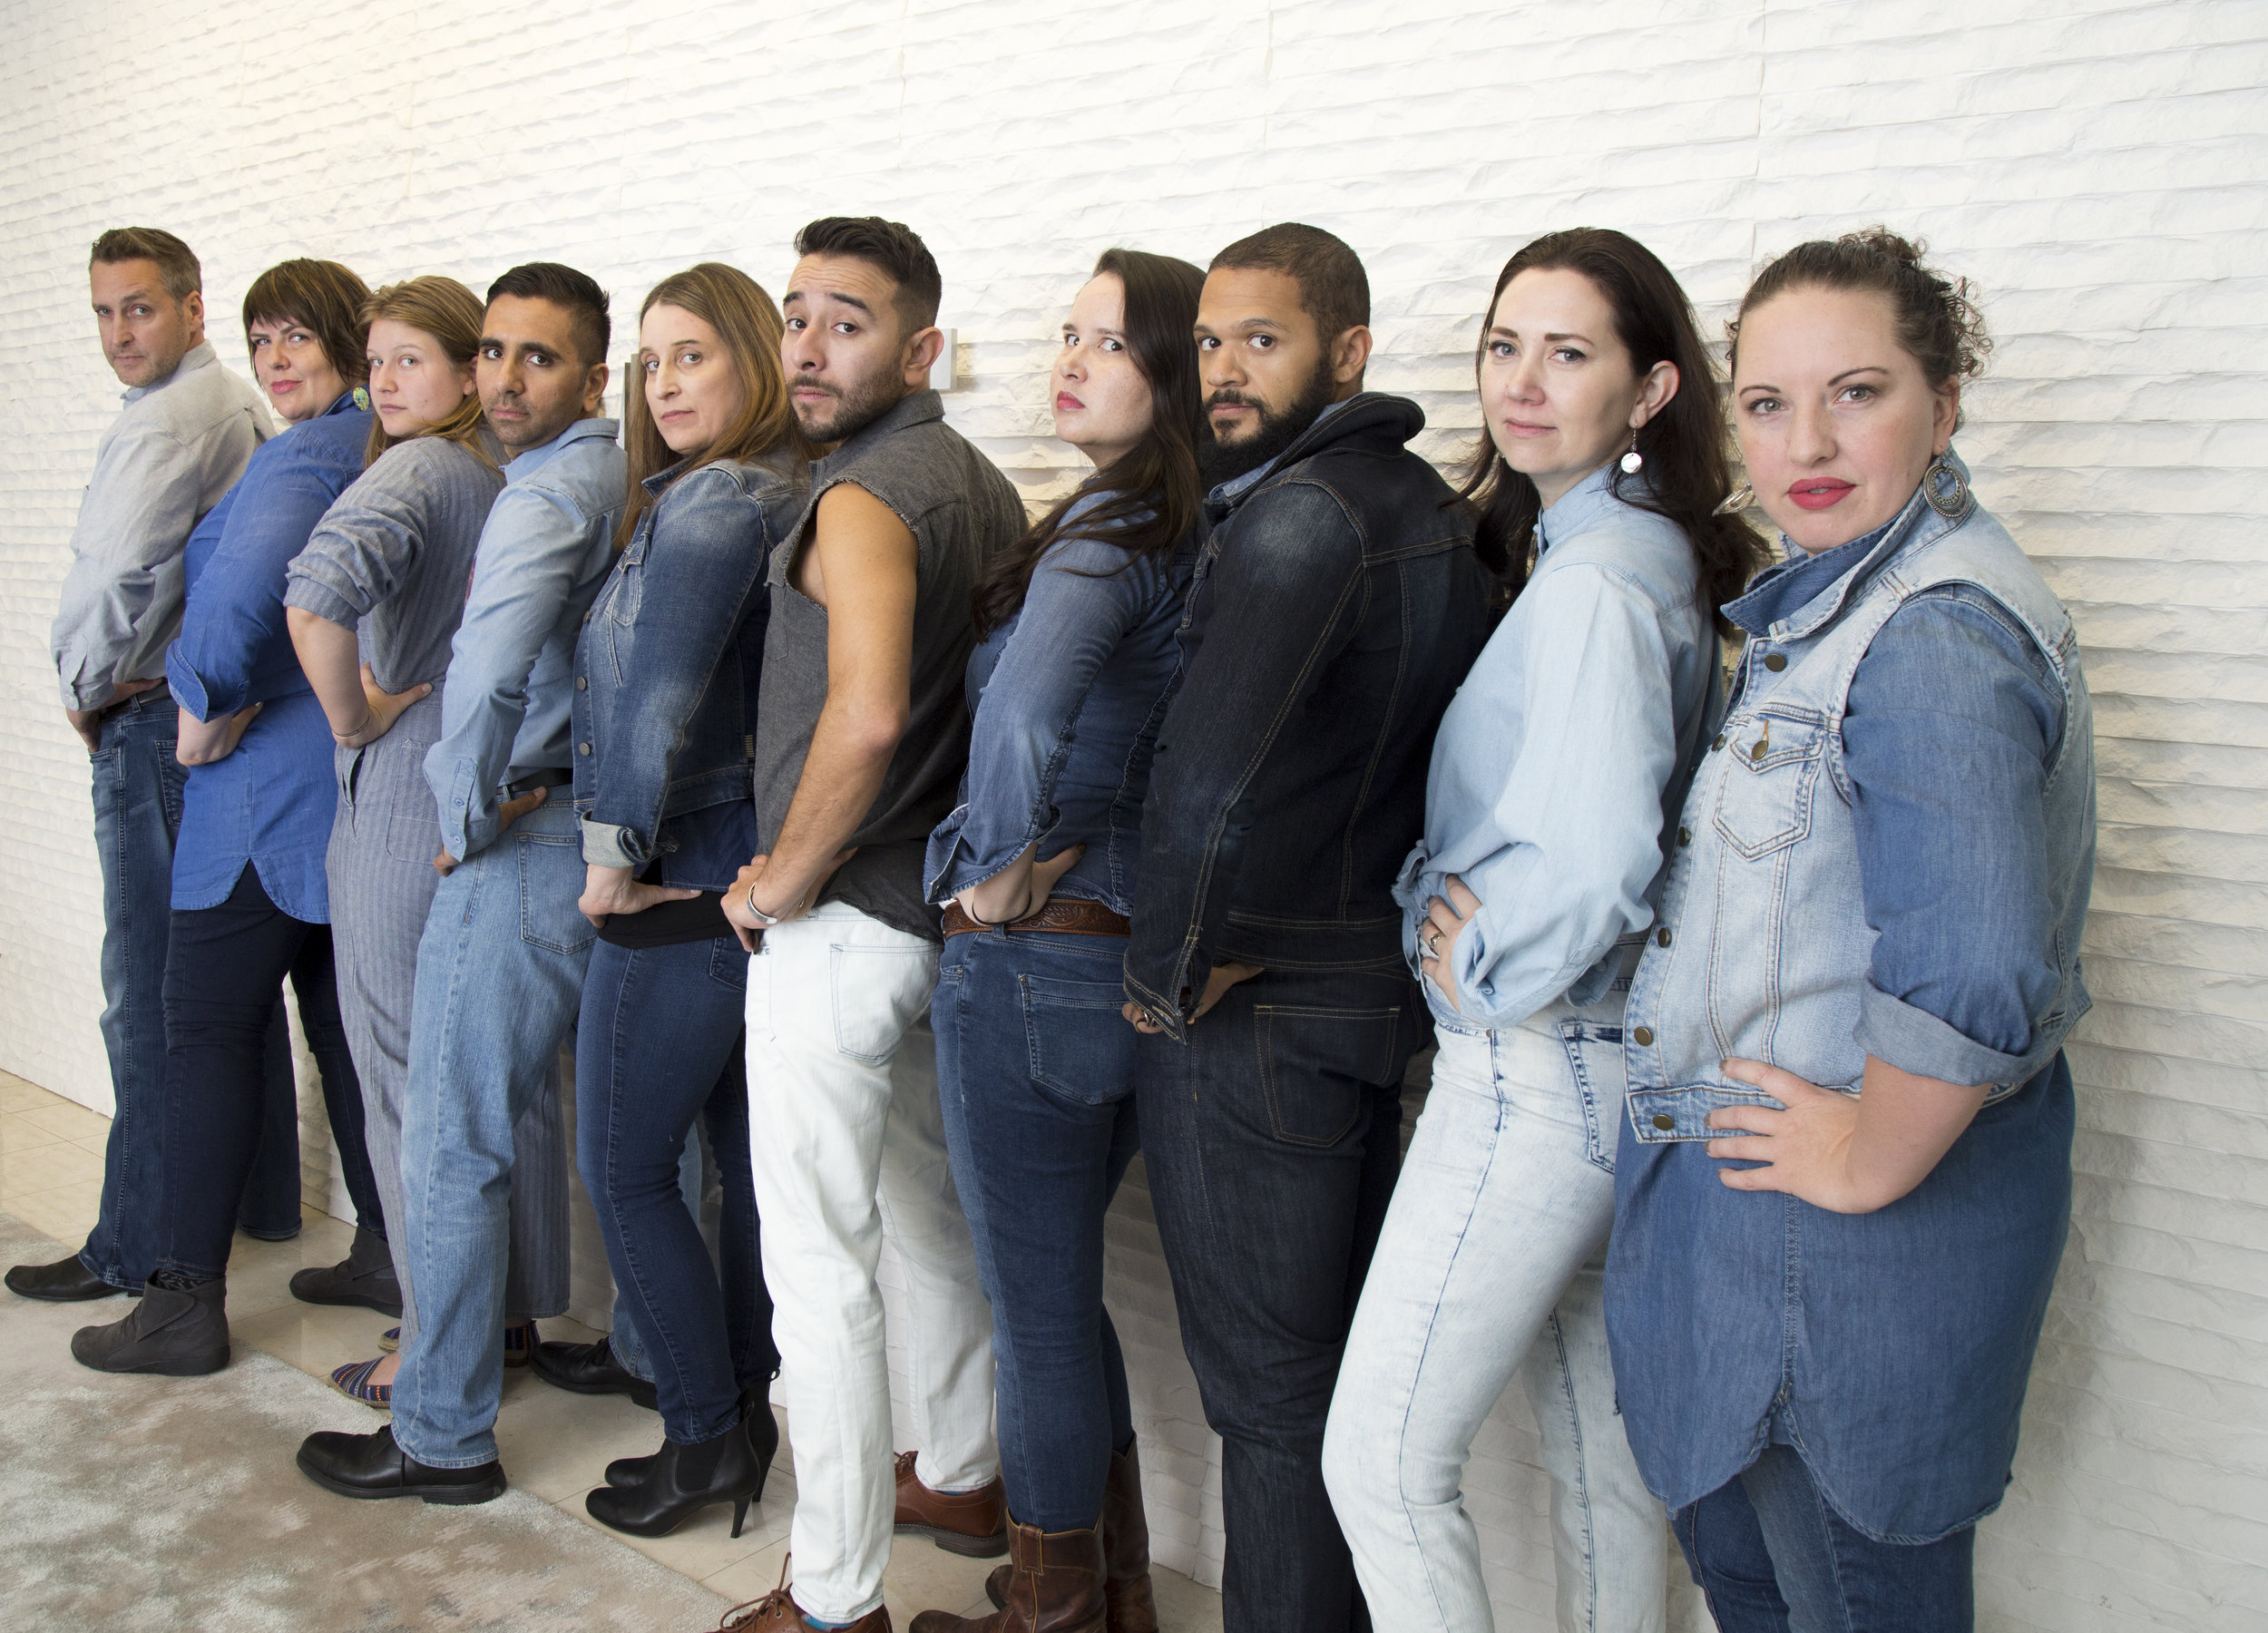 NWHF staff, all dressed in denim, stand in a line along a white brick wall with their backs to the camera. They all look over their shoulders.